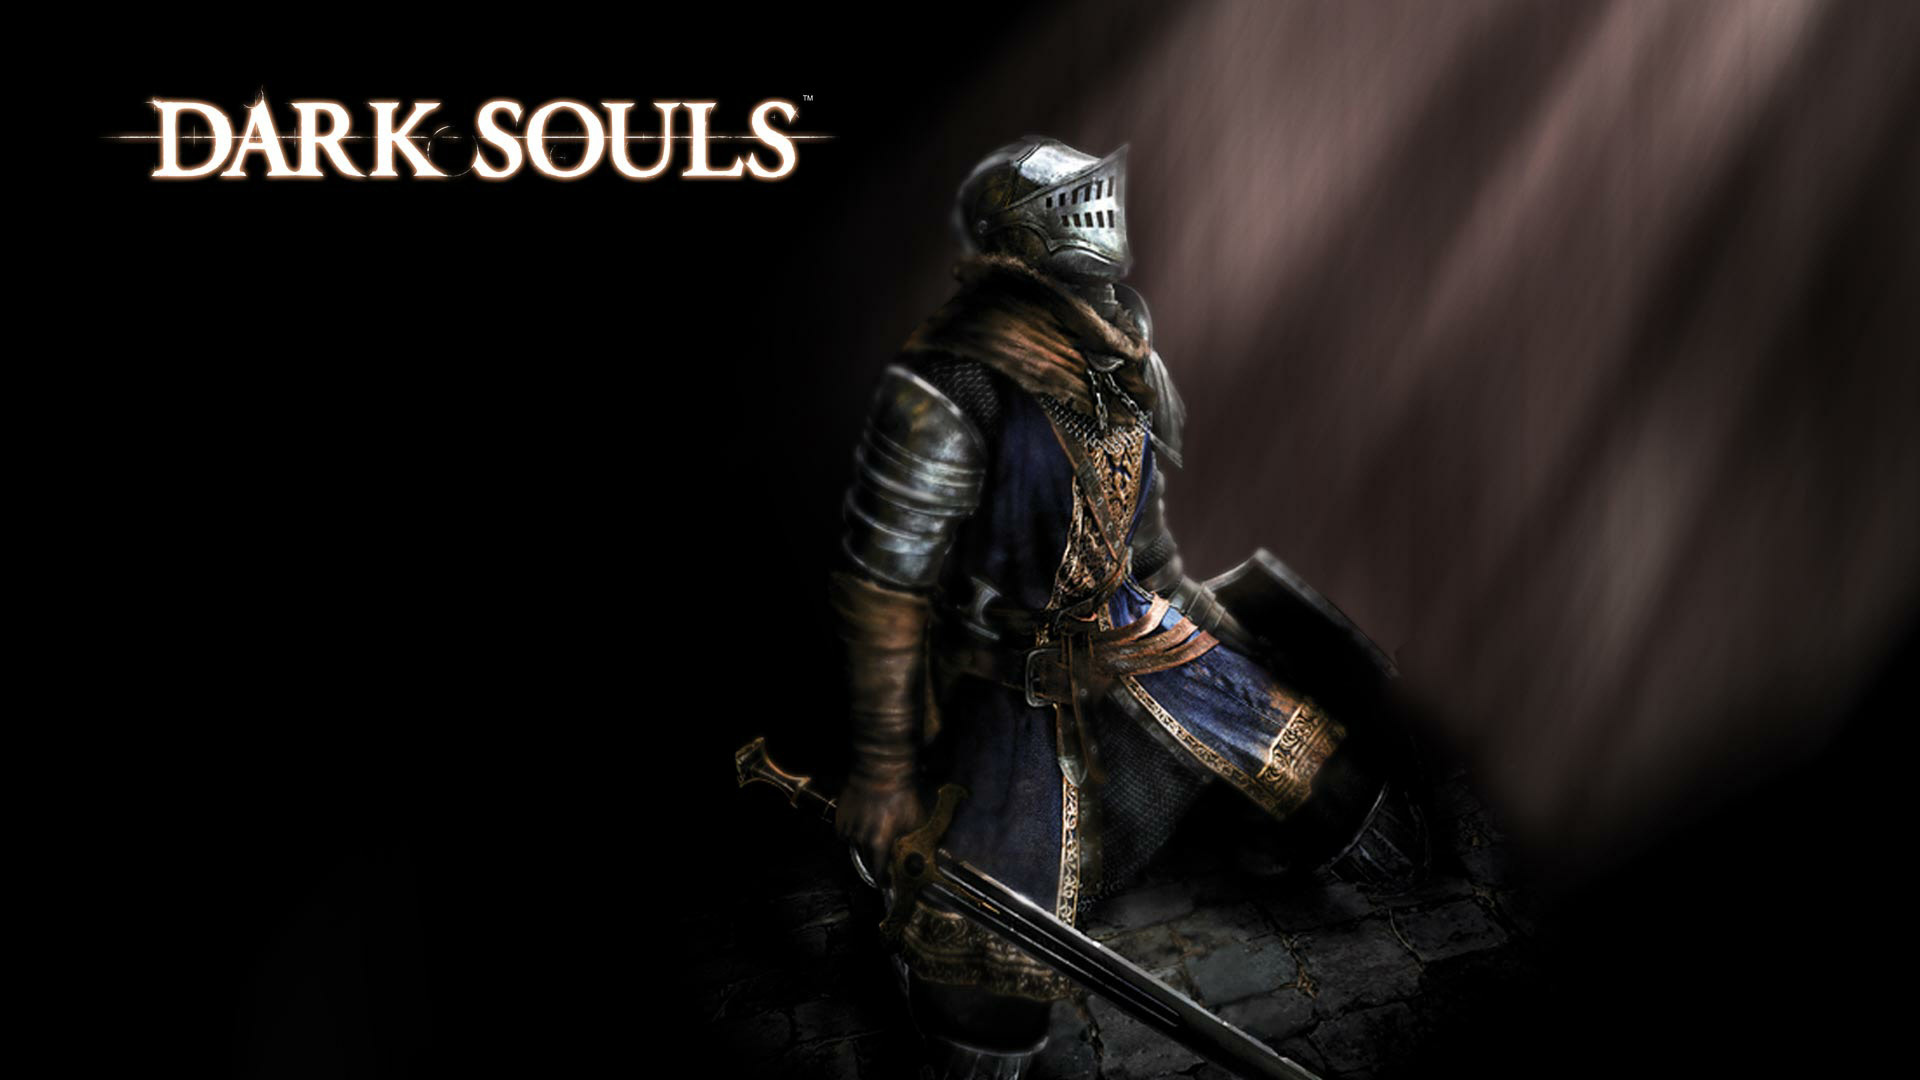 Dark Souls Wallpapers in HD Page 2 1920x1080